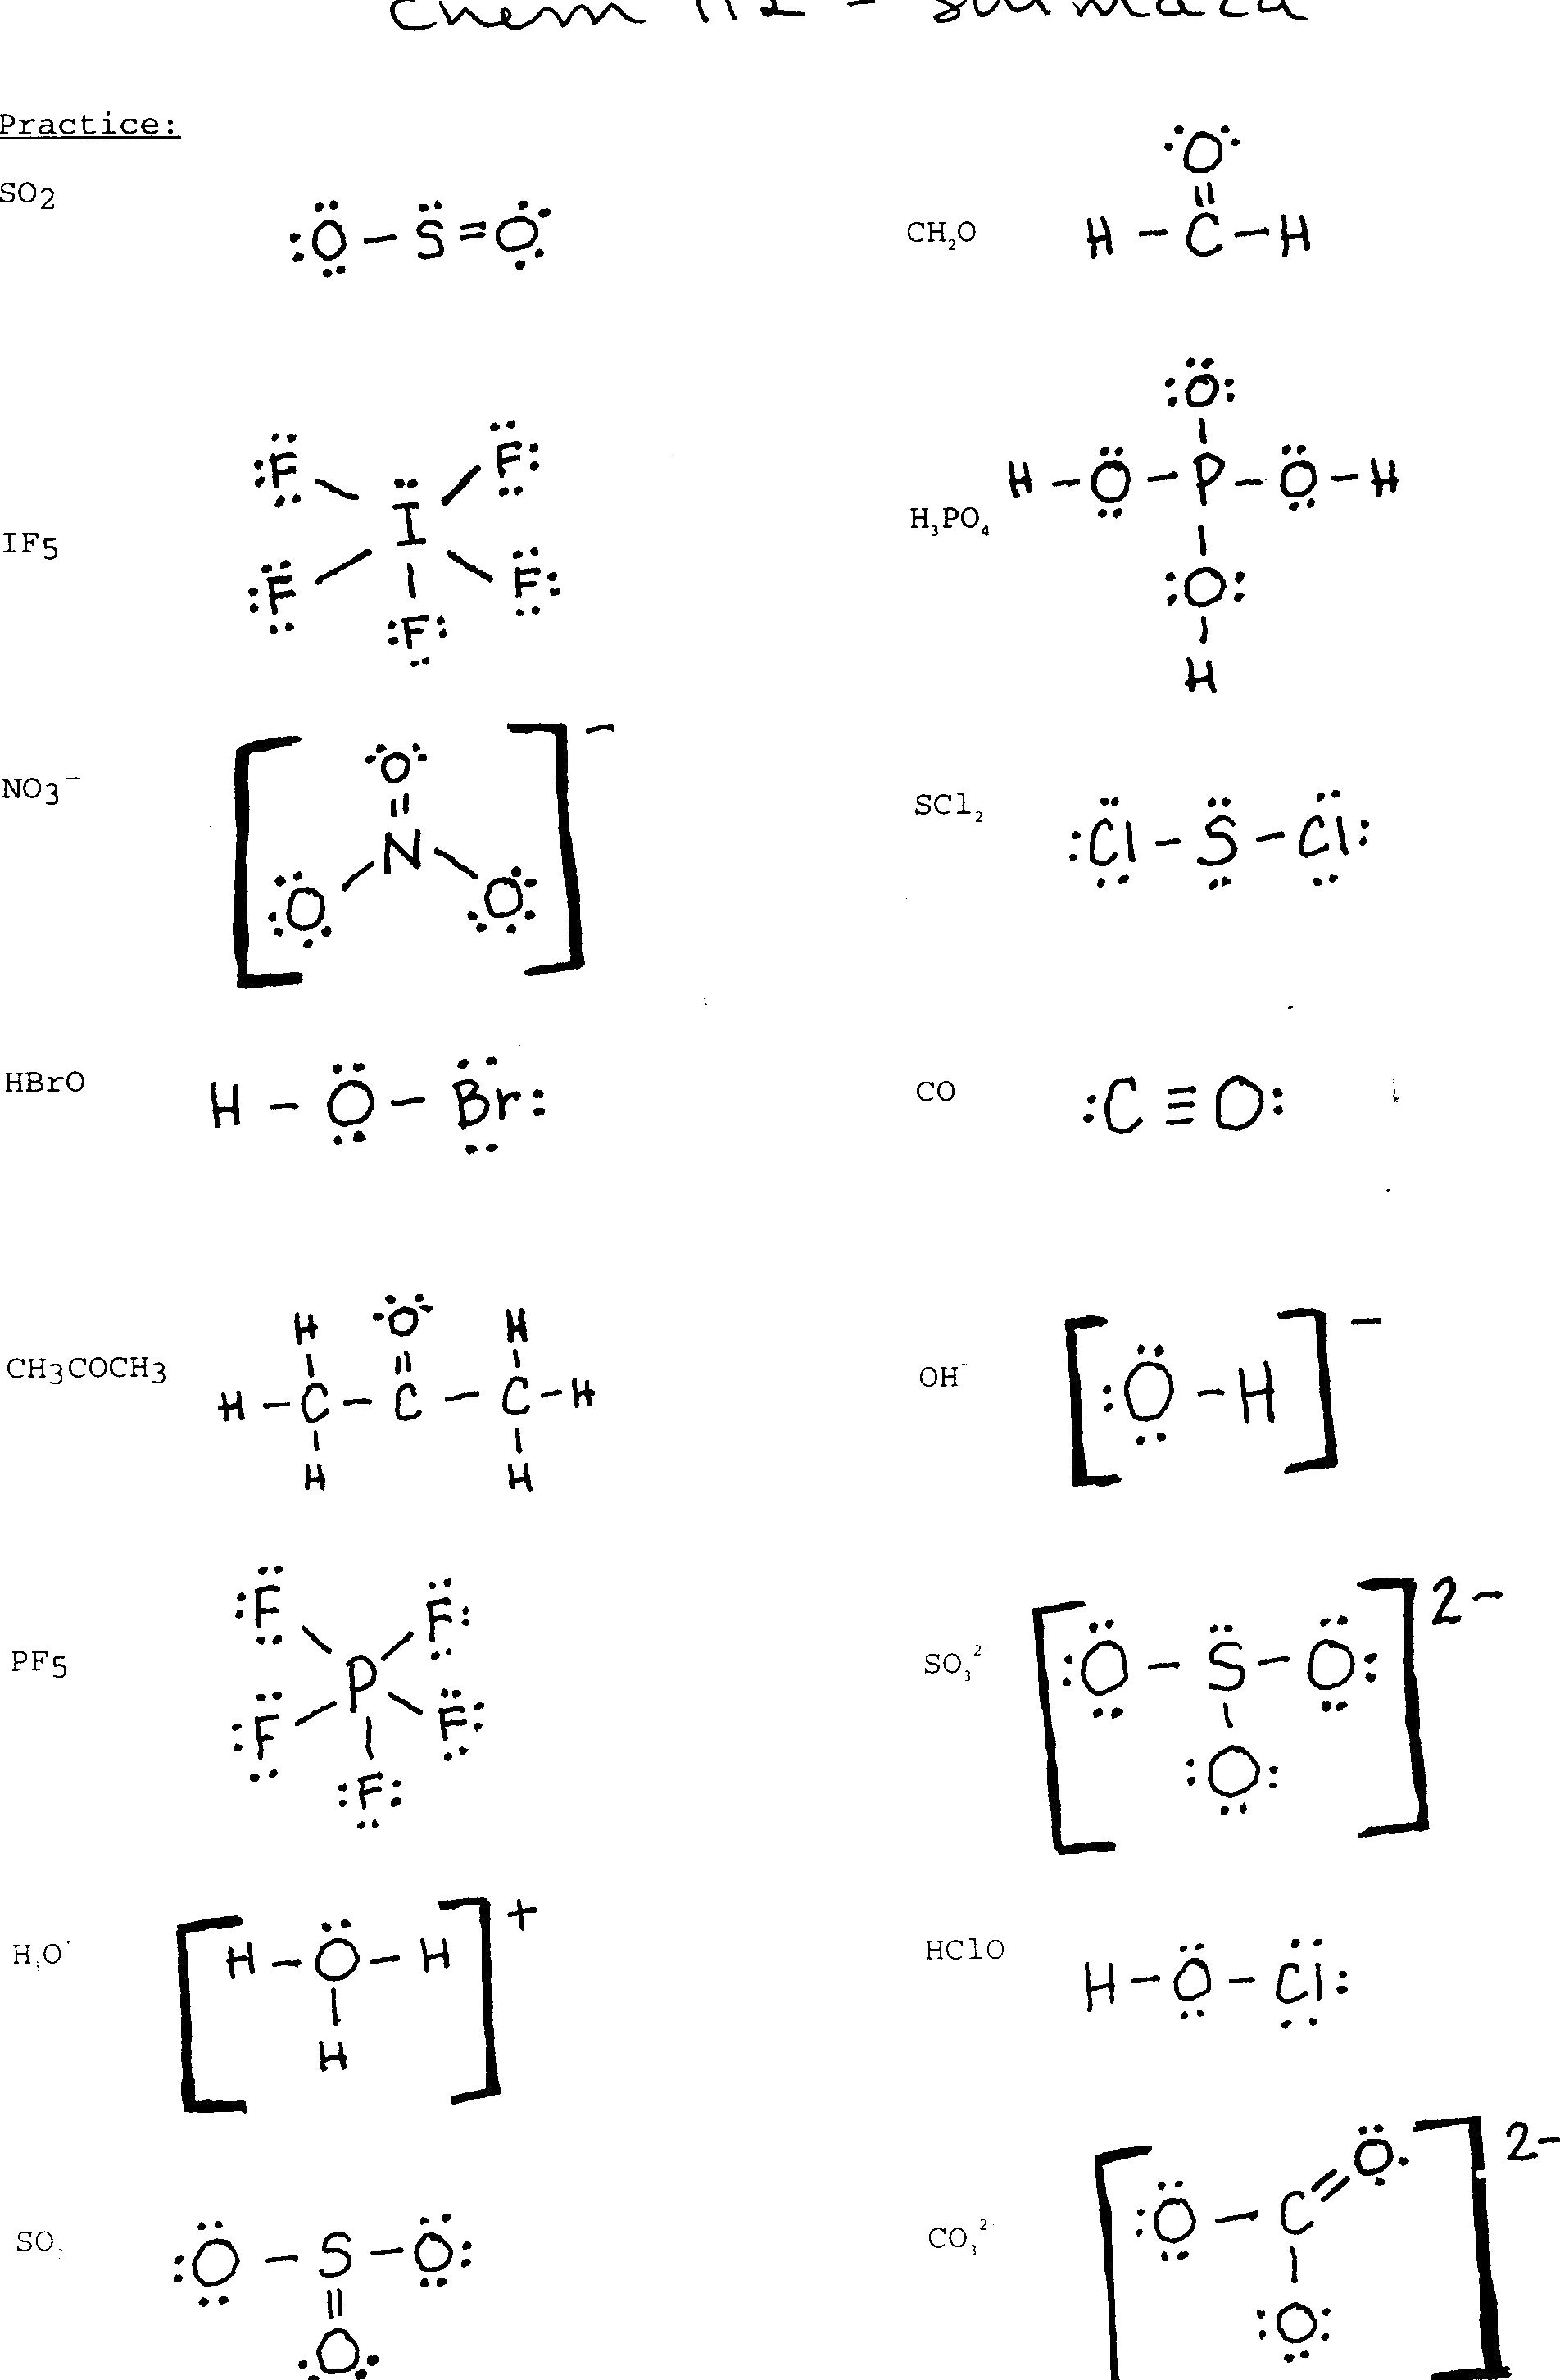 Lewis Structure Worksheet With Answers Algebra Worksheets Pedigree Along With Lewis Structure Worksheet With Answers